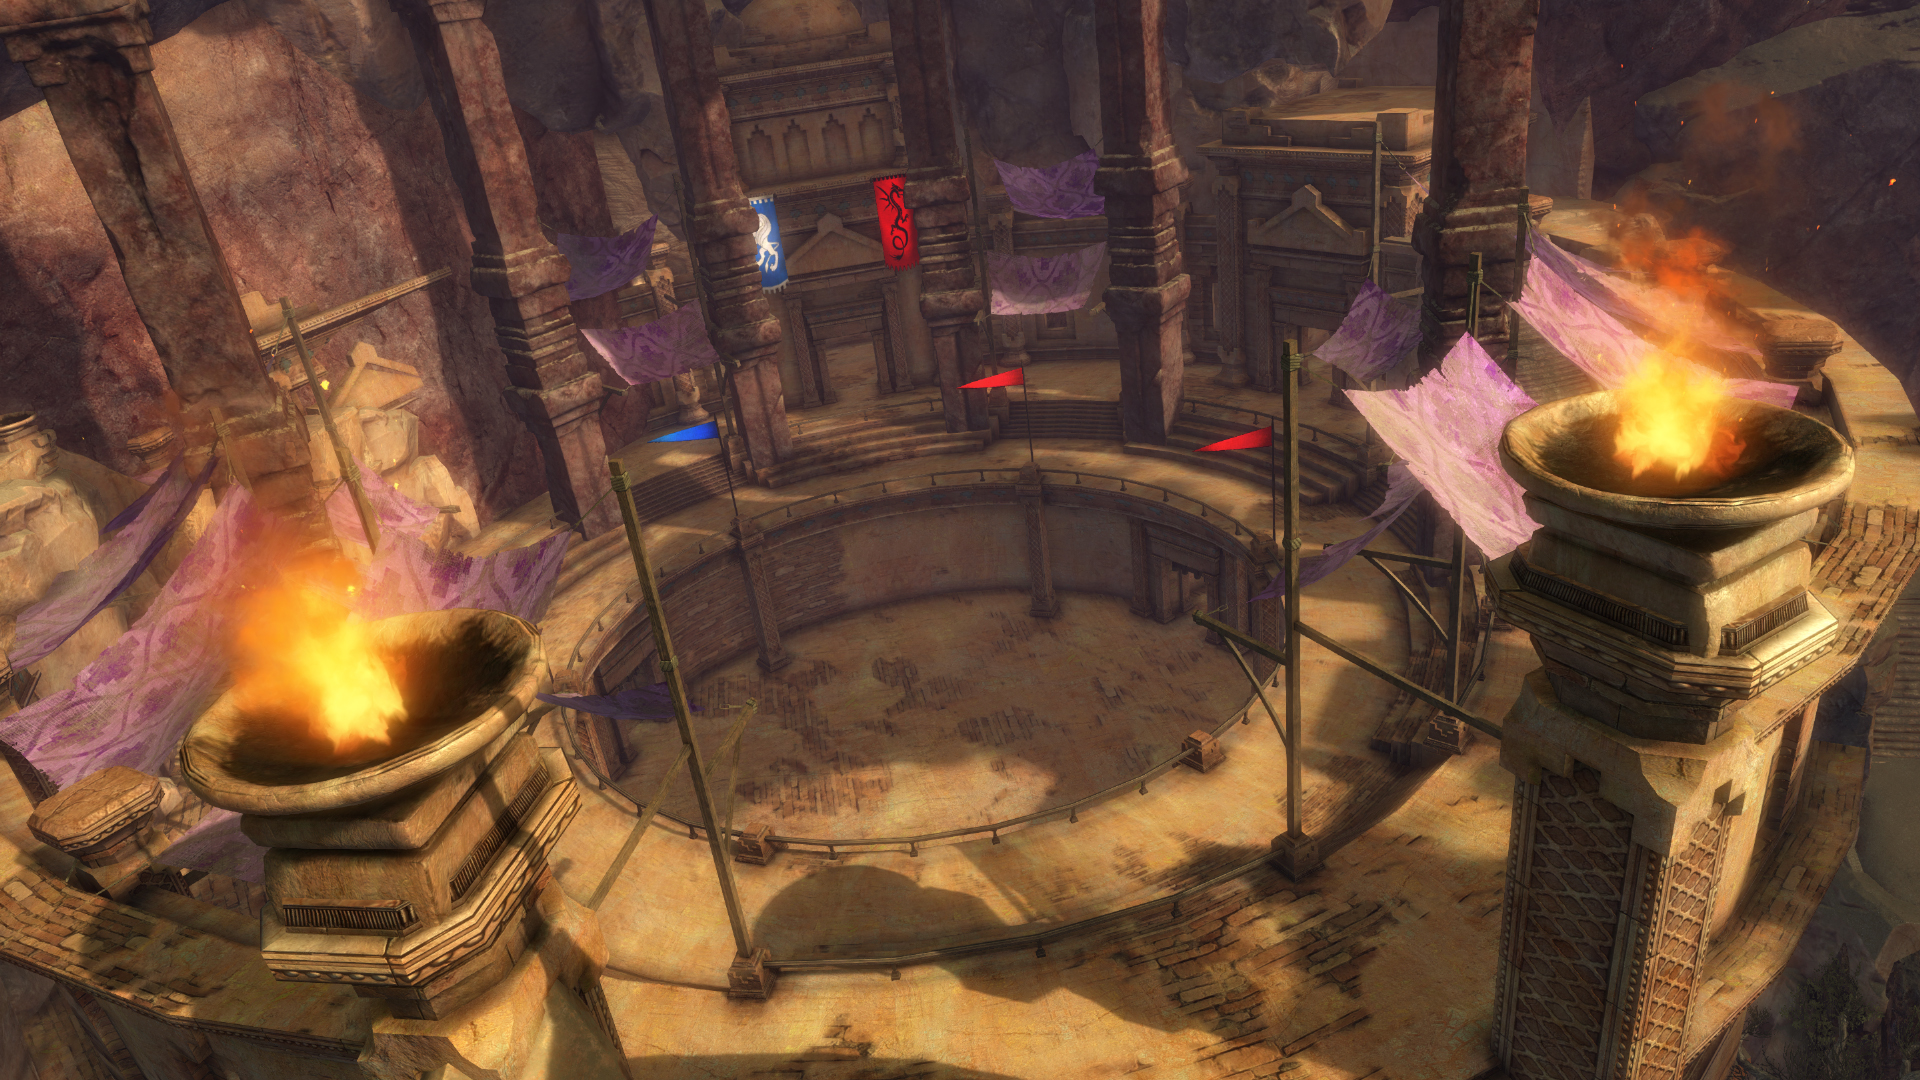 Gw2 heart of thorns guild building arena